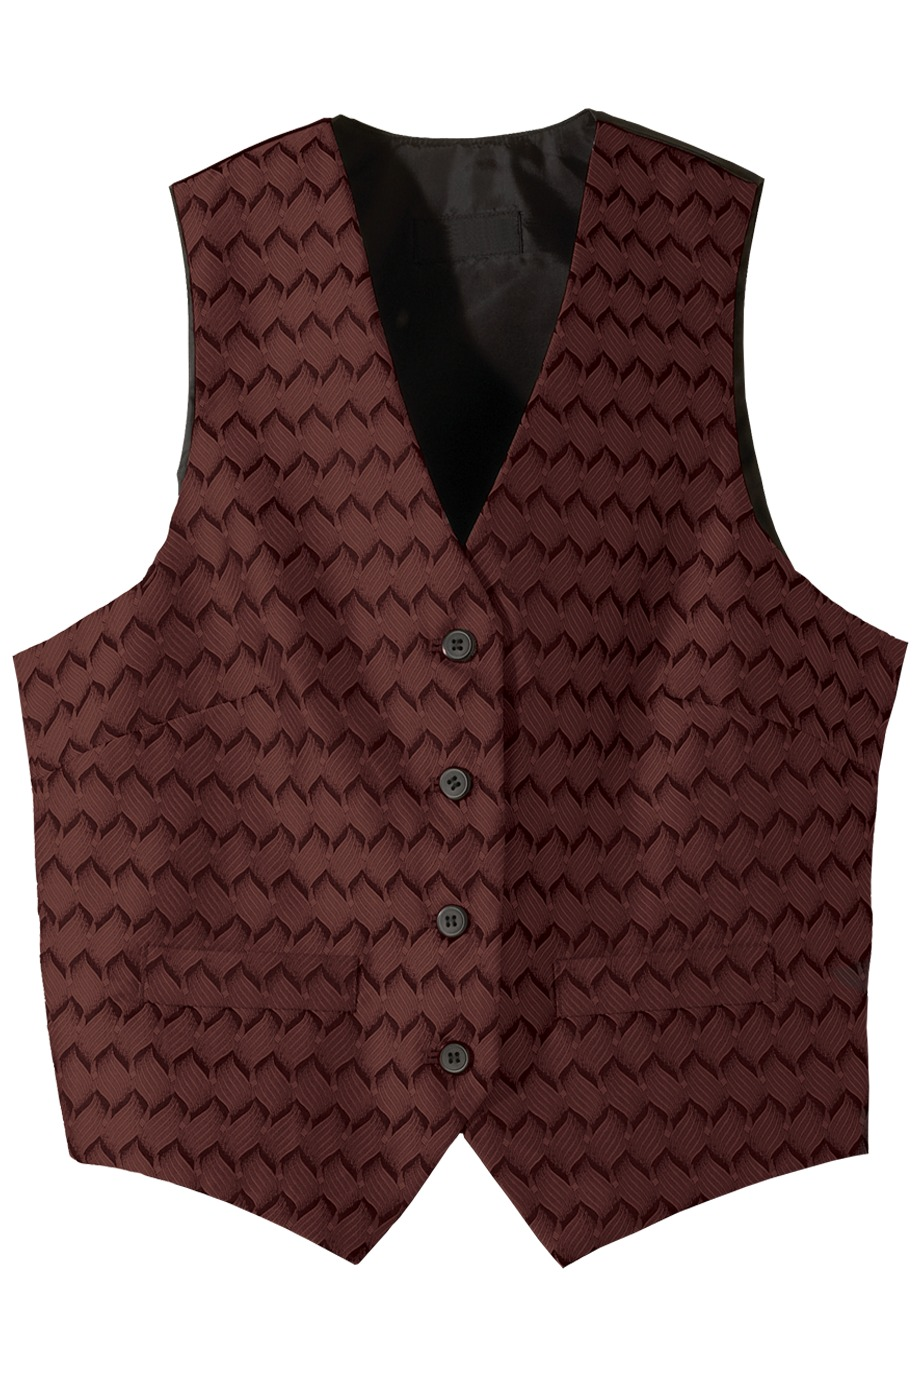 Edwards Garment 7391 - Women's Swirl Brocade Vest